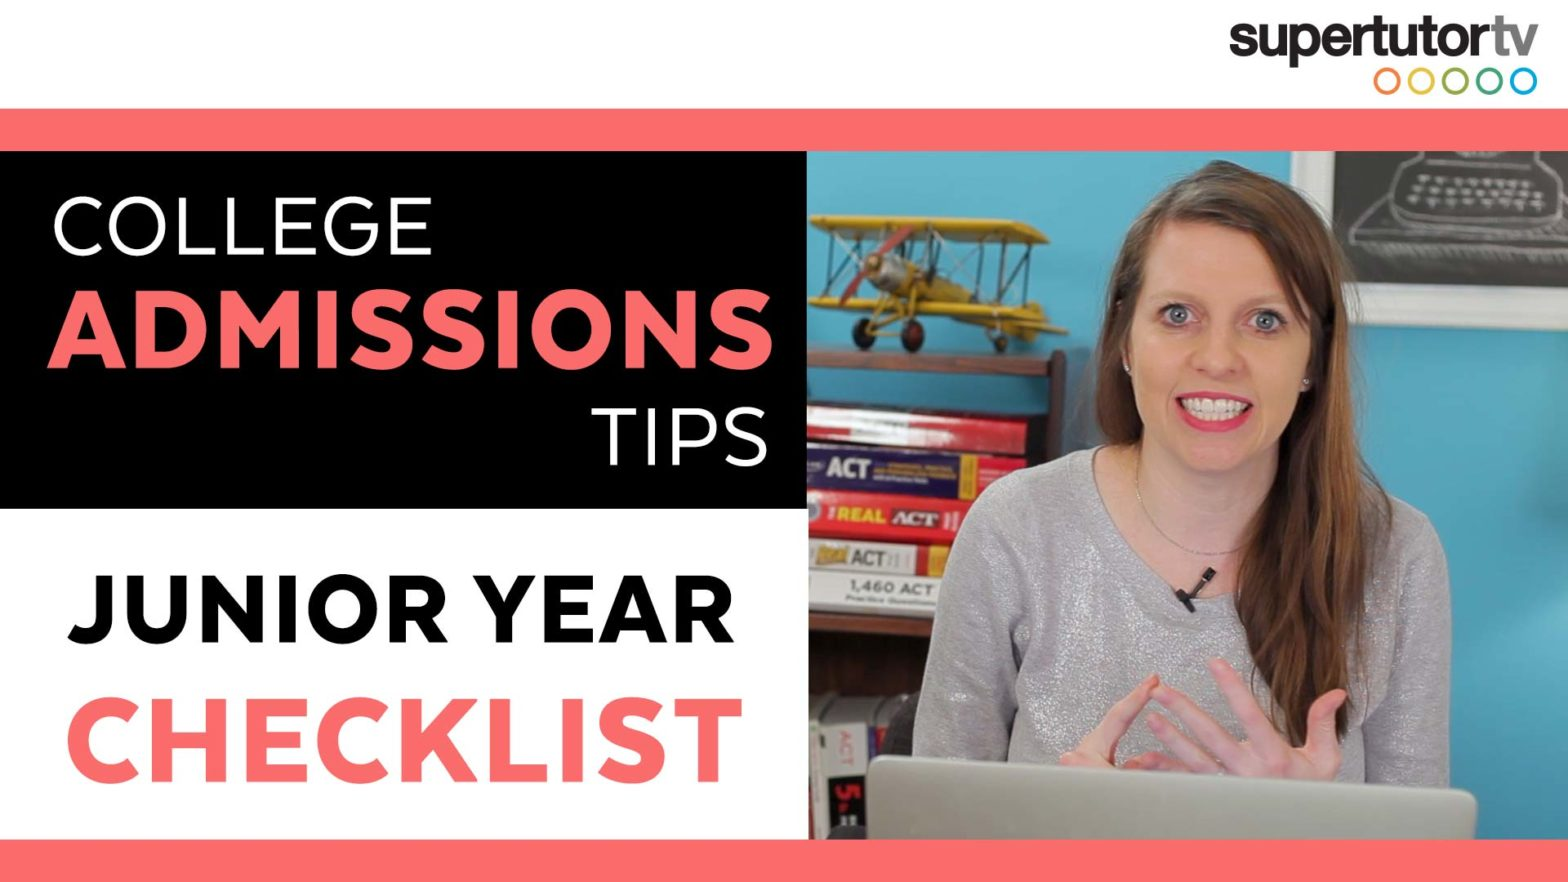 Junior Year Checklist: College Admission Tips